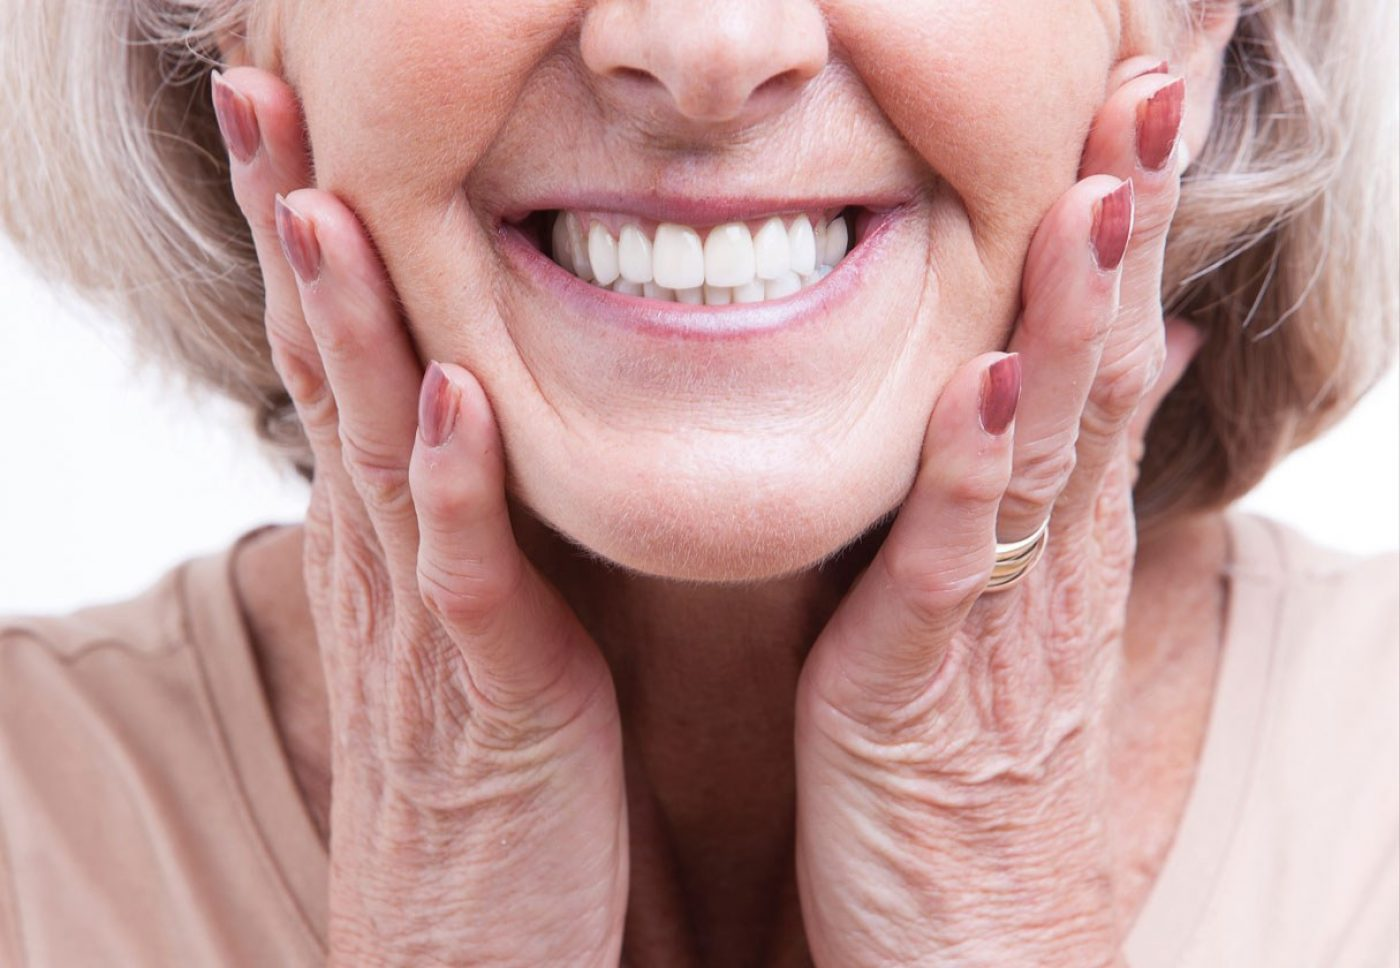 Rosconnor Replacing Teeth Dentures